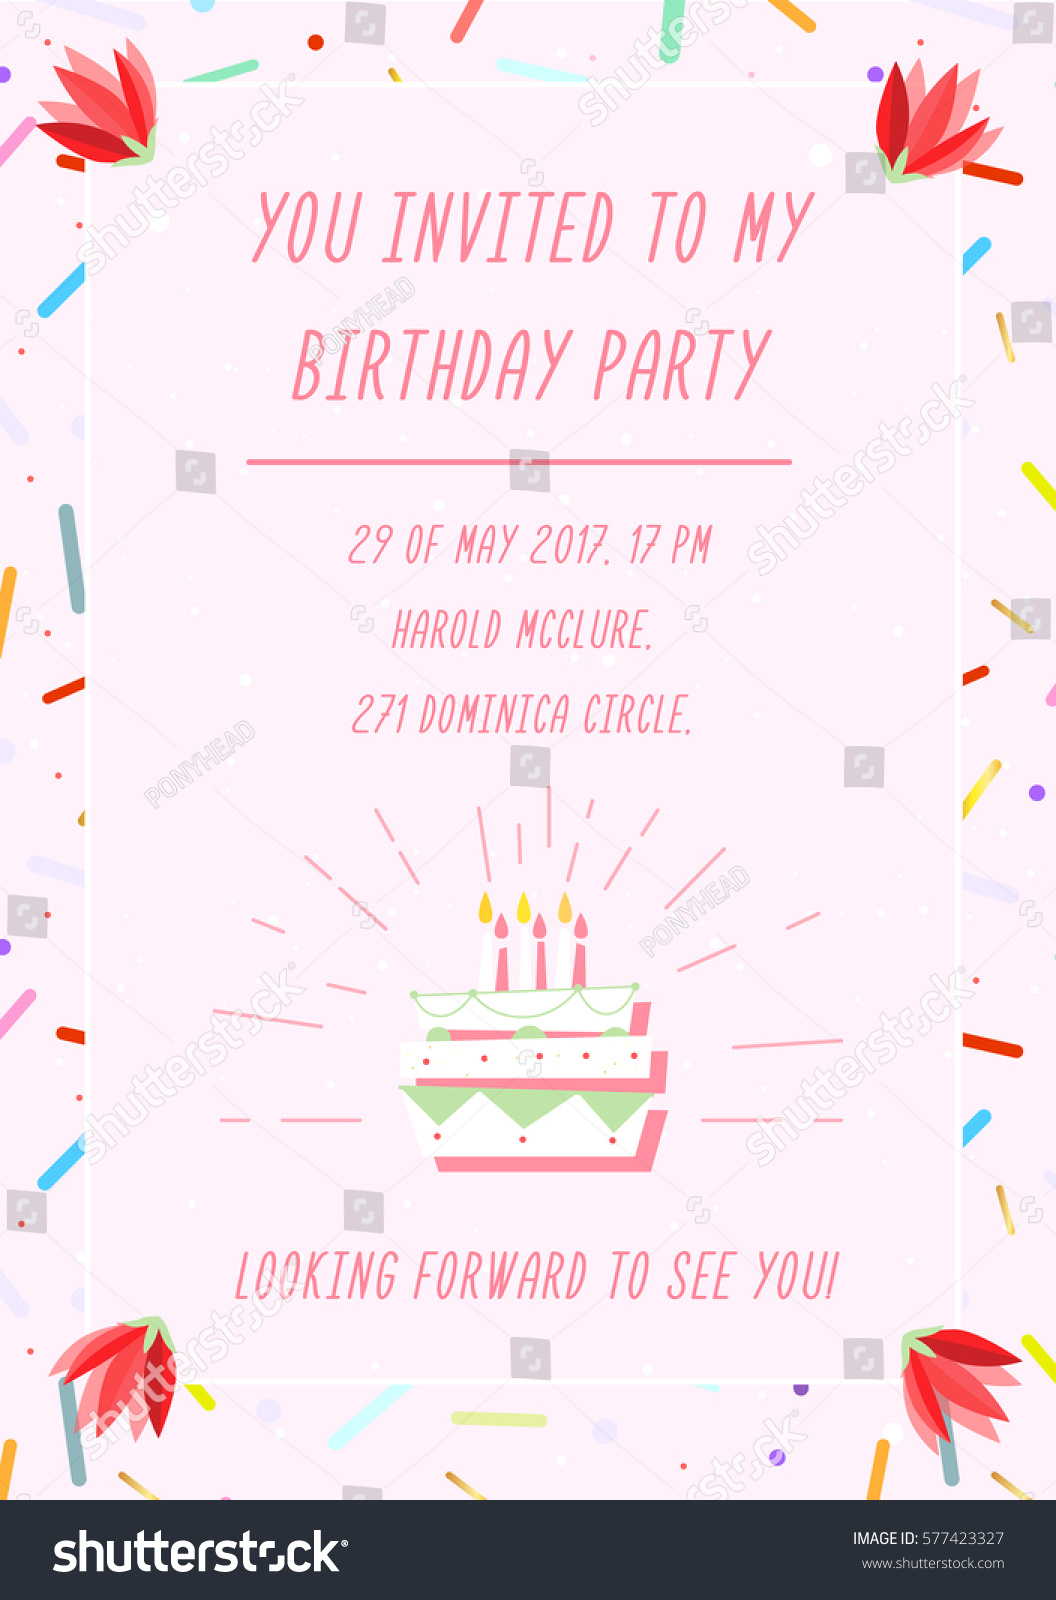 Birthday Invitation Card On Geometric Background Stock Vector Stock Vector  Birthday Invitation Card On Geometric Background With Colorful Shapes And  Forms ...  Invitation Forms